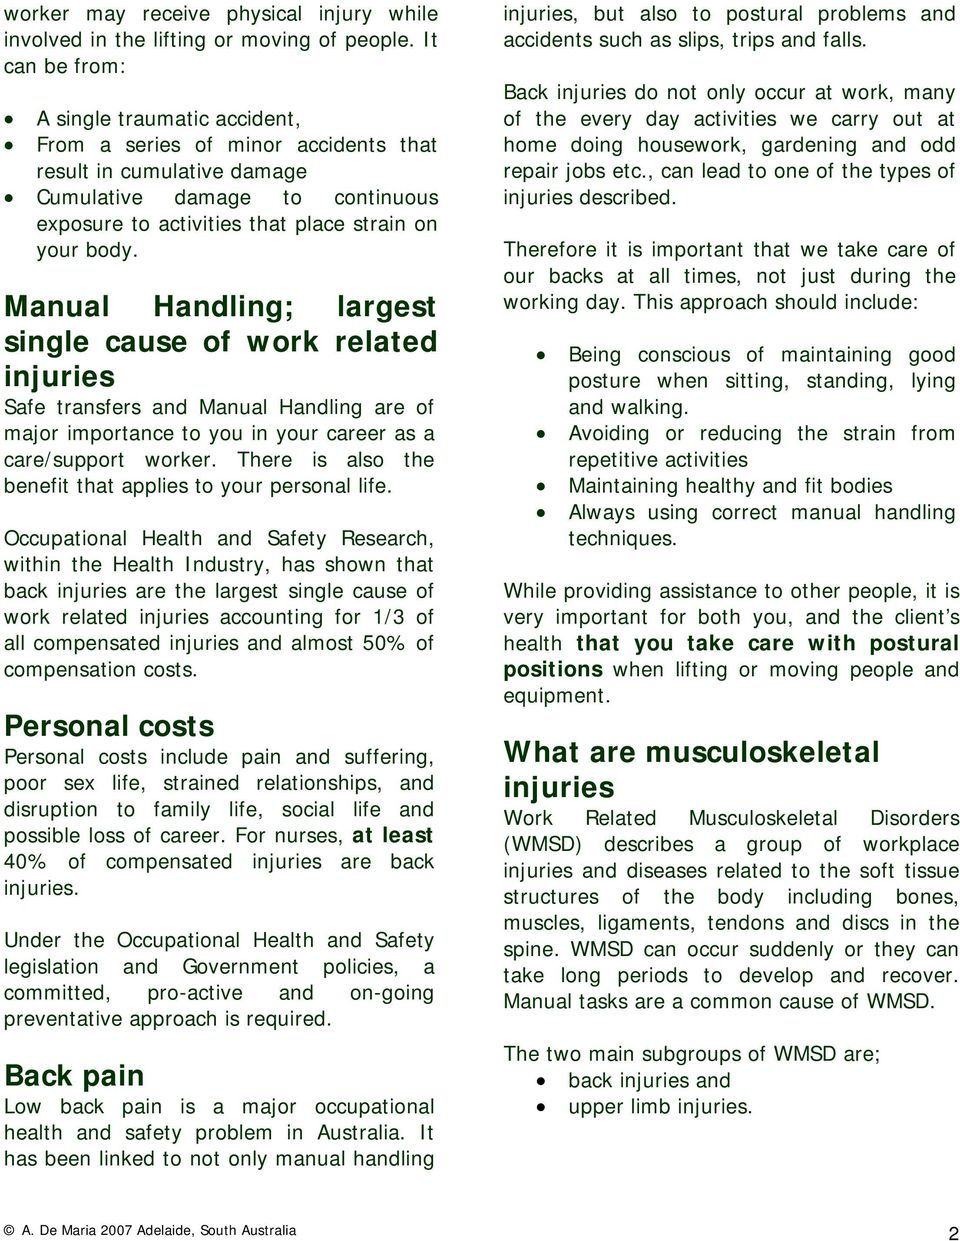 Manual Handling; largest single cause of work related injuries Safe transfers and Manual Handling are of major importance to you in your career as a care/support worker.